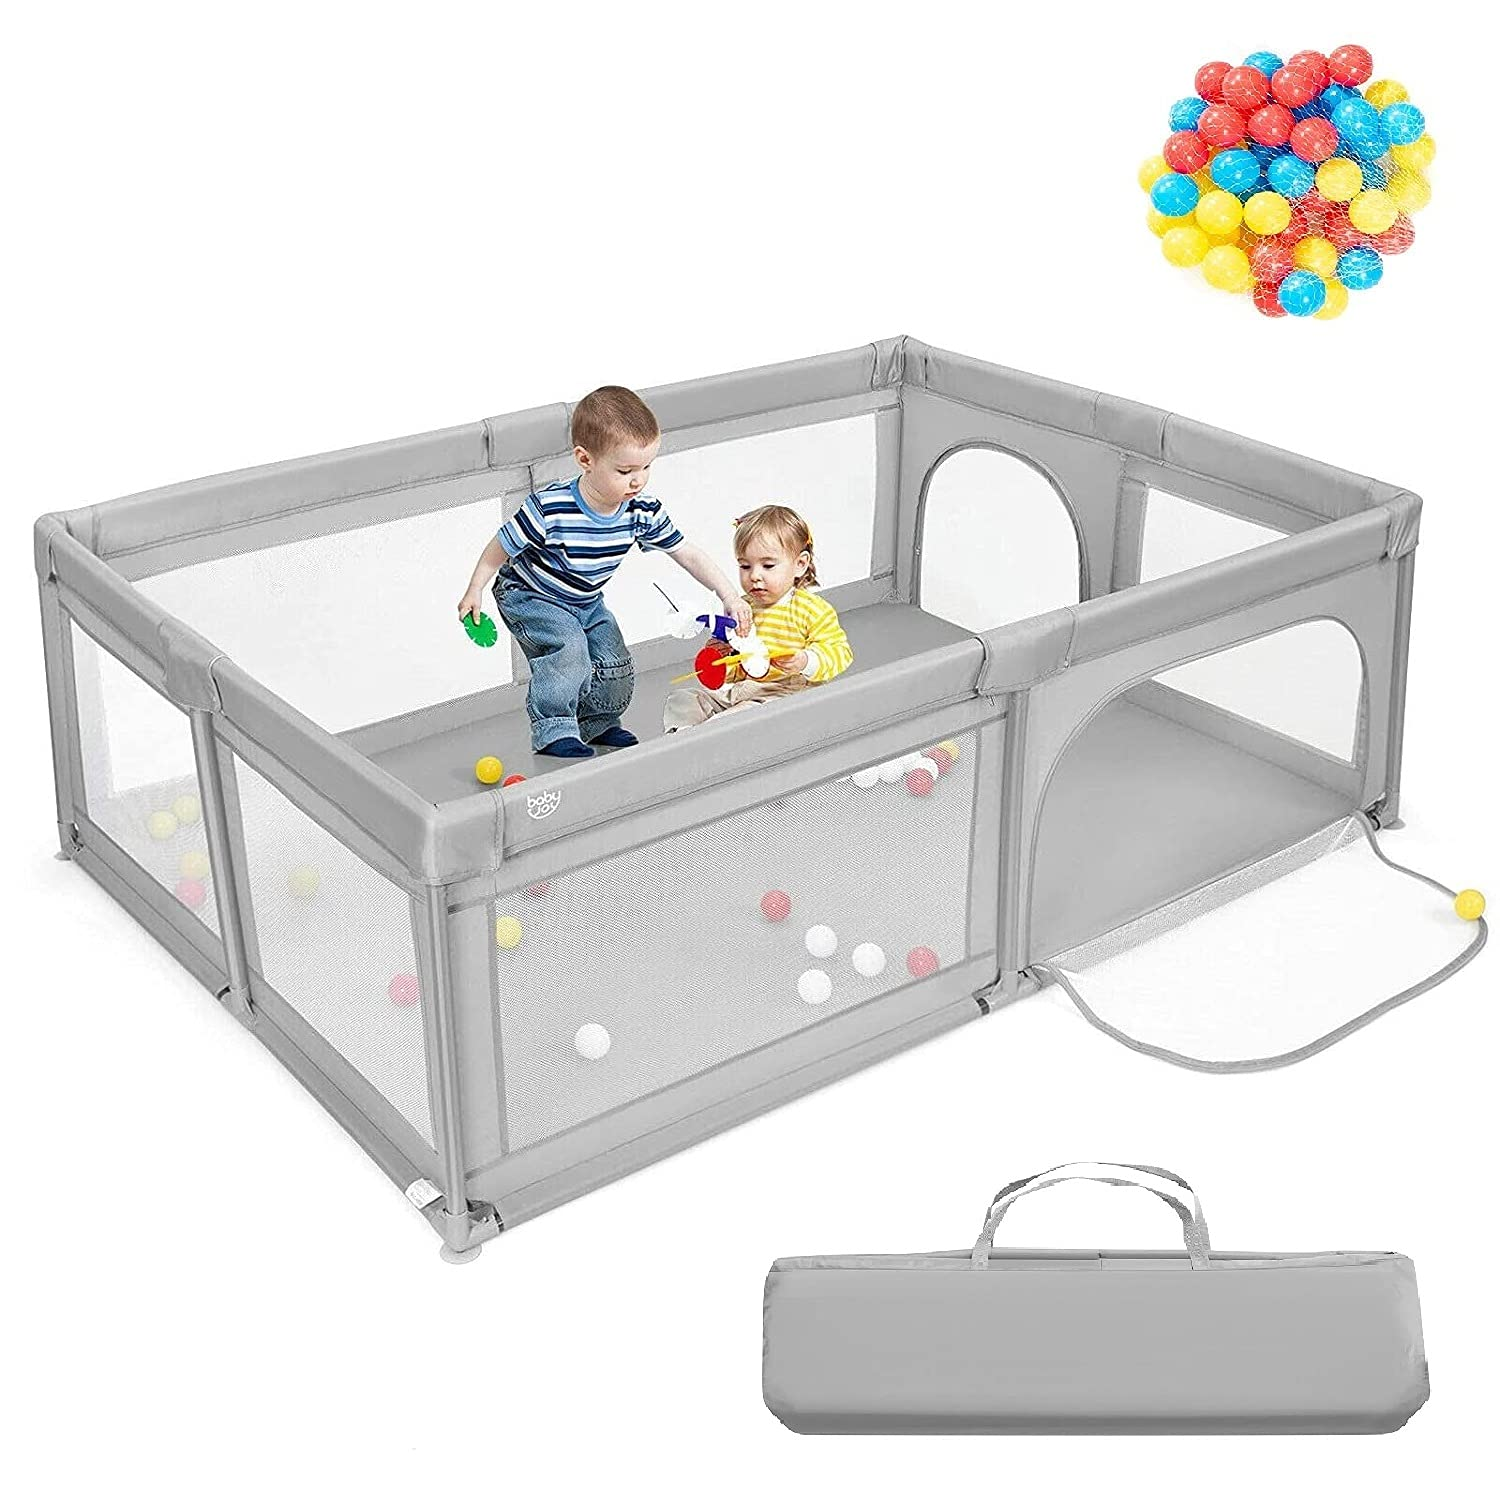 """Costzon Baby Playpen, Extra Large Playpen for Toddlers Baby, Portable Baby Fence with Safety Gates/50 Ocean Balls/Anti-Slip Suckers/Breathable Mesh Walls/Portable Bag, 81"""" x 58"""" x 27"""" (Grey)"""